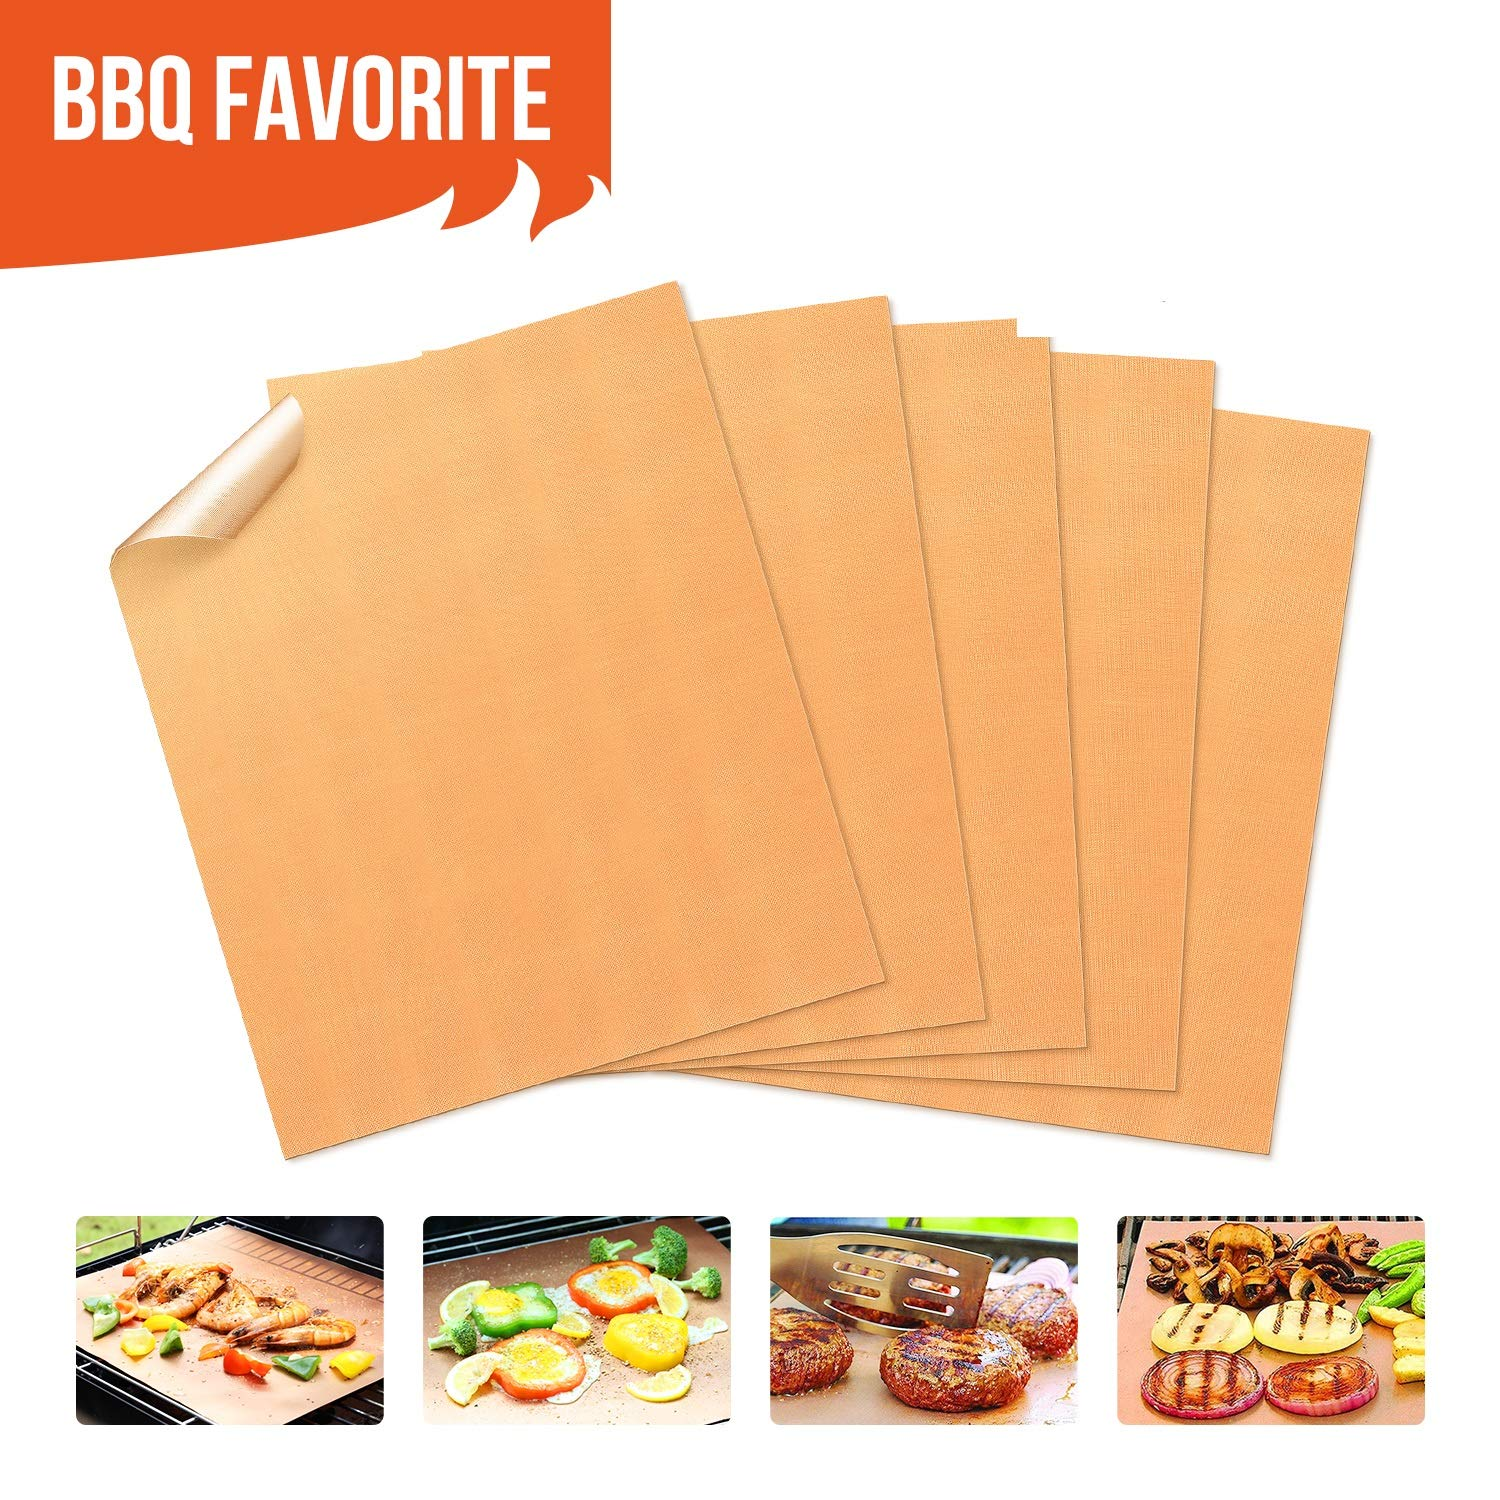 Copper Grill Mats Non-Stick BBQ Grill Mat Bake Mat Set of 5 Barbecue Grilling & Baking, FDA-Approved, Heavy Duty 1.94 oz/Sheet, Reusable & Easy to Clean-Suits Gas,Charcoal,Electric Grill More